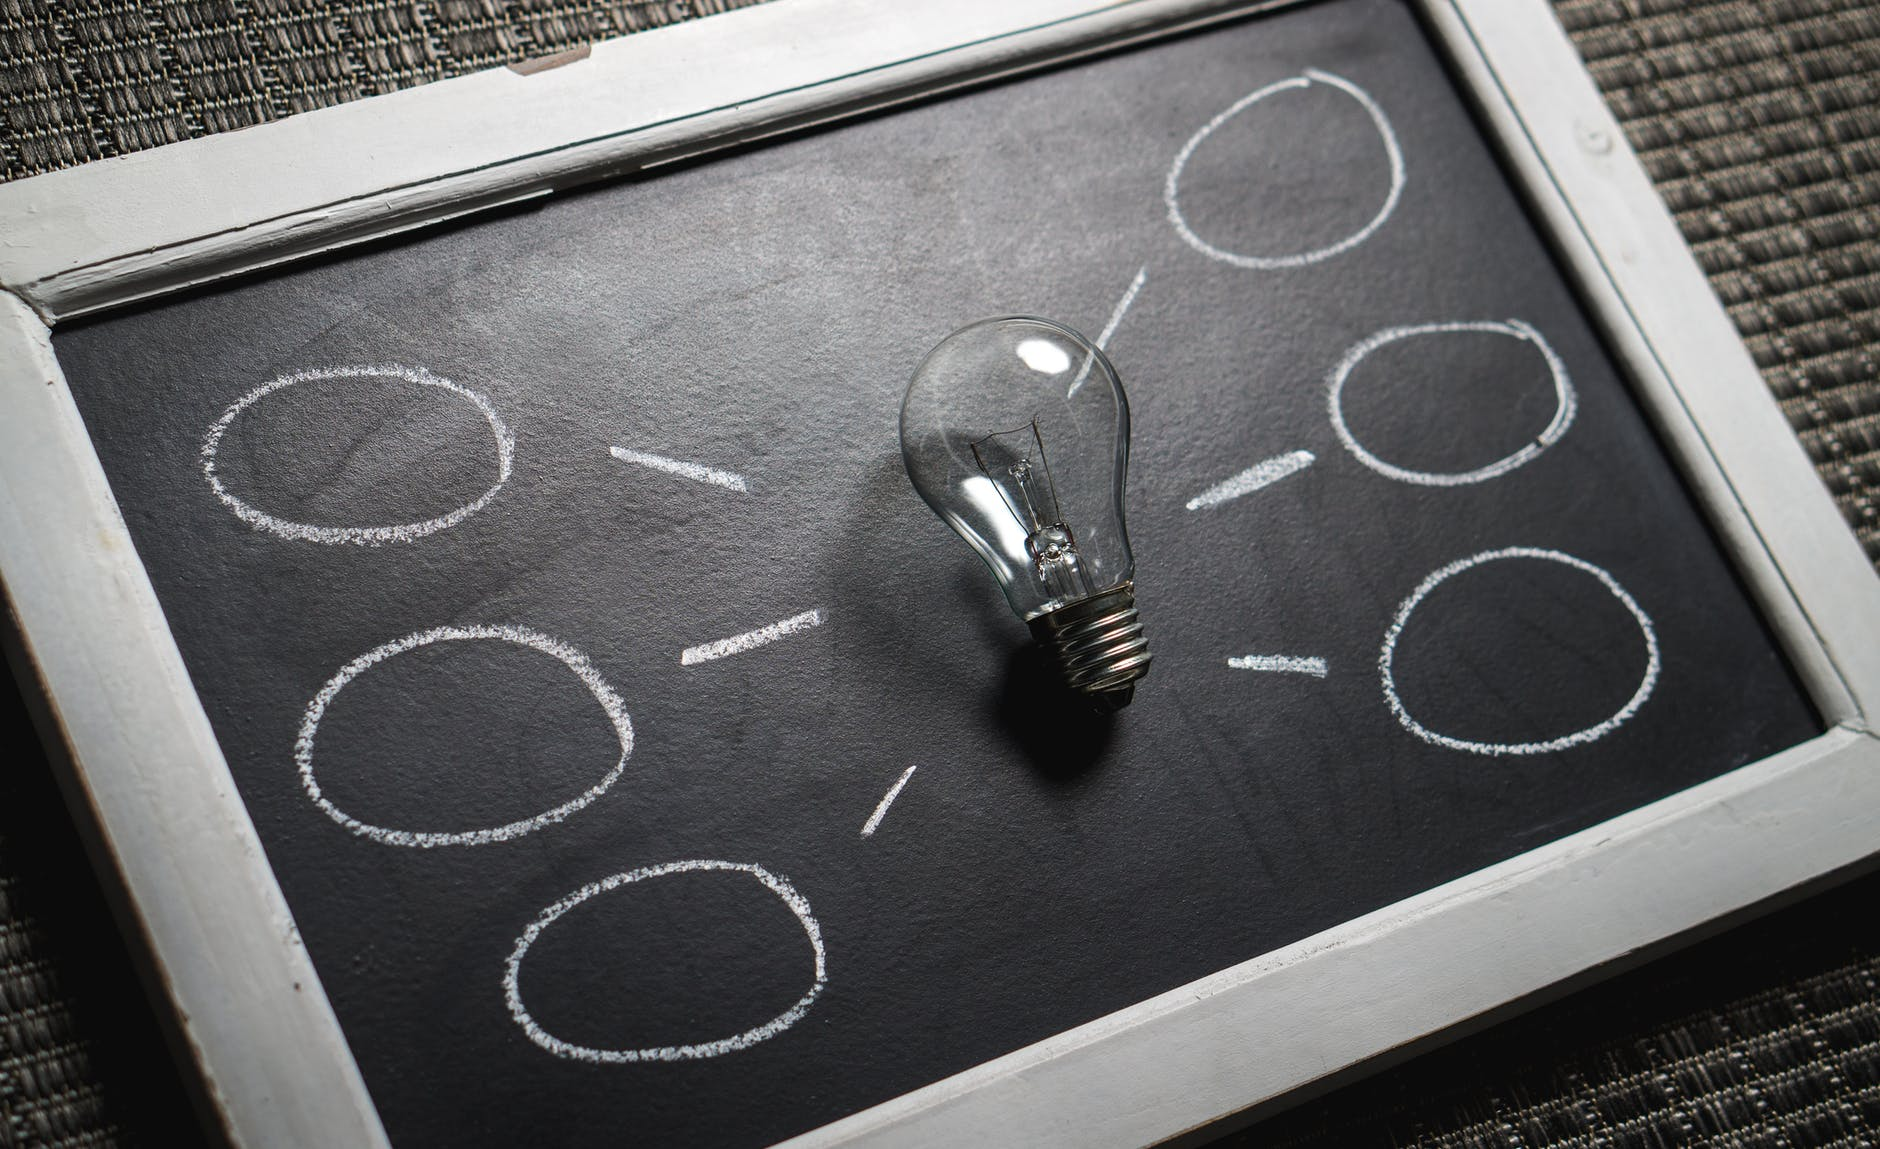 Chalk board with light bulb in the middle representing educational consultation and information